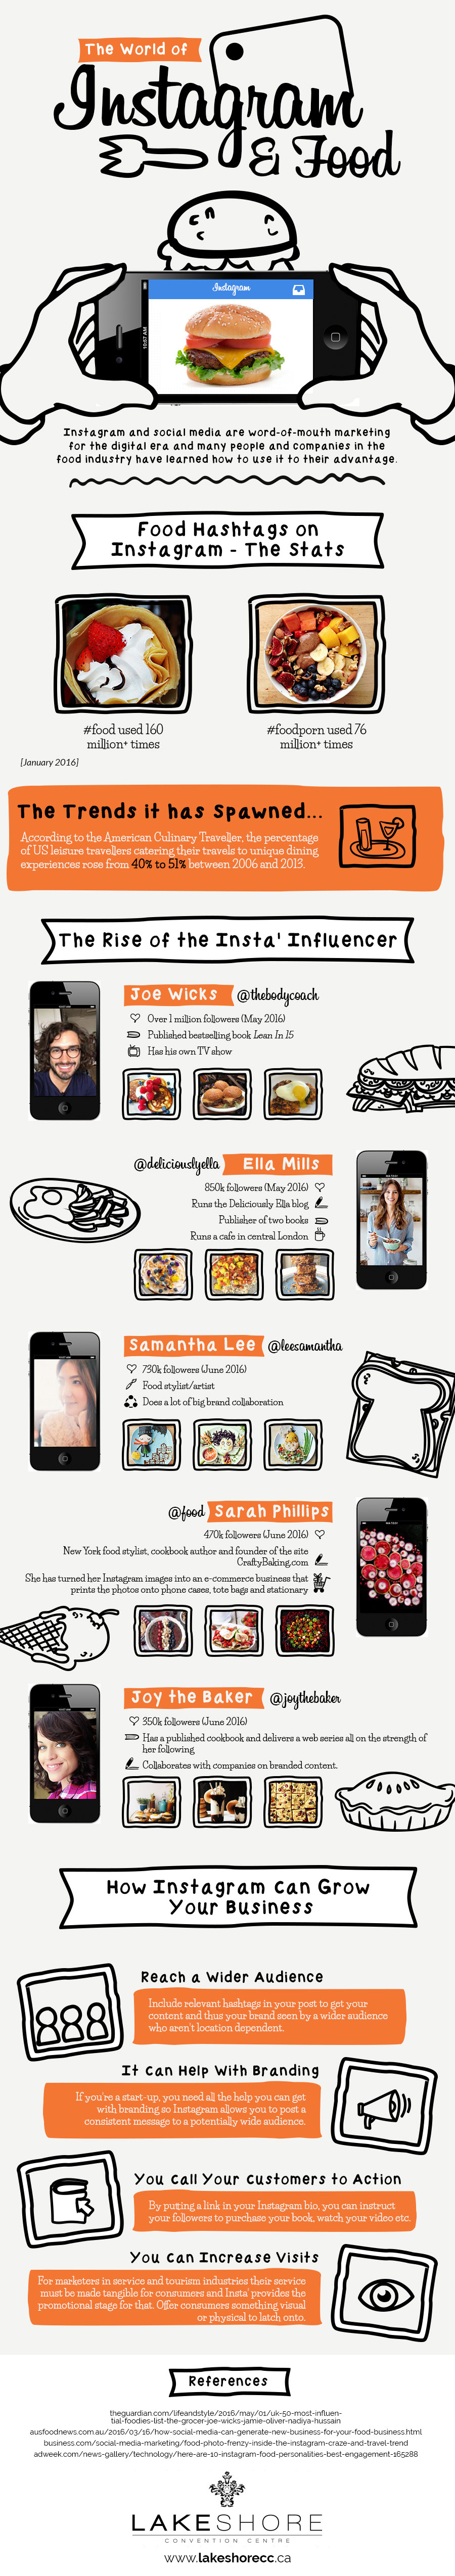 The World of Instagram and Food - An infographic